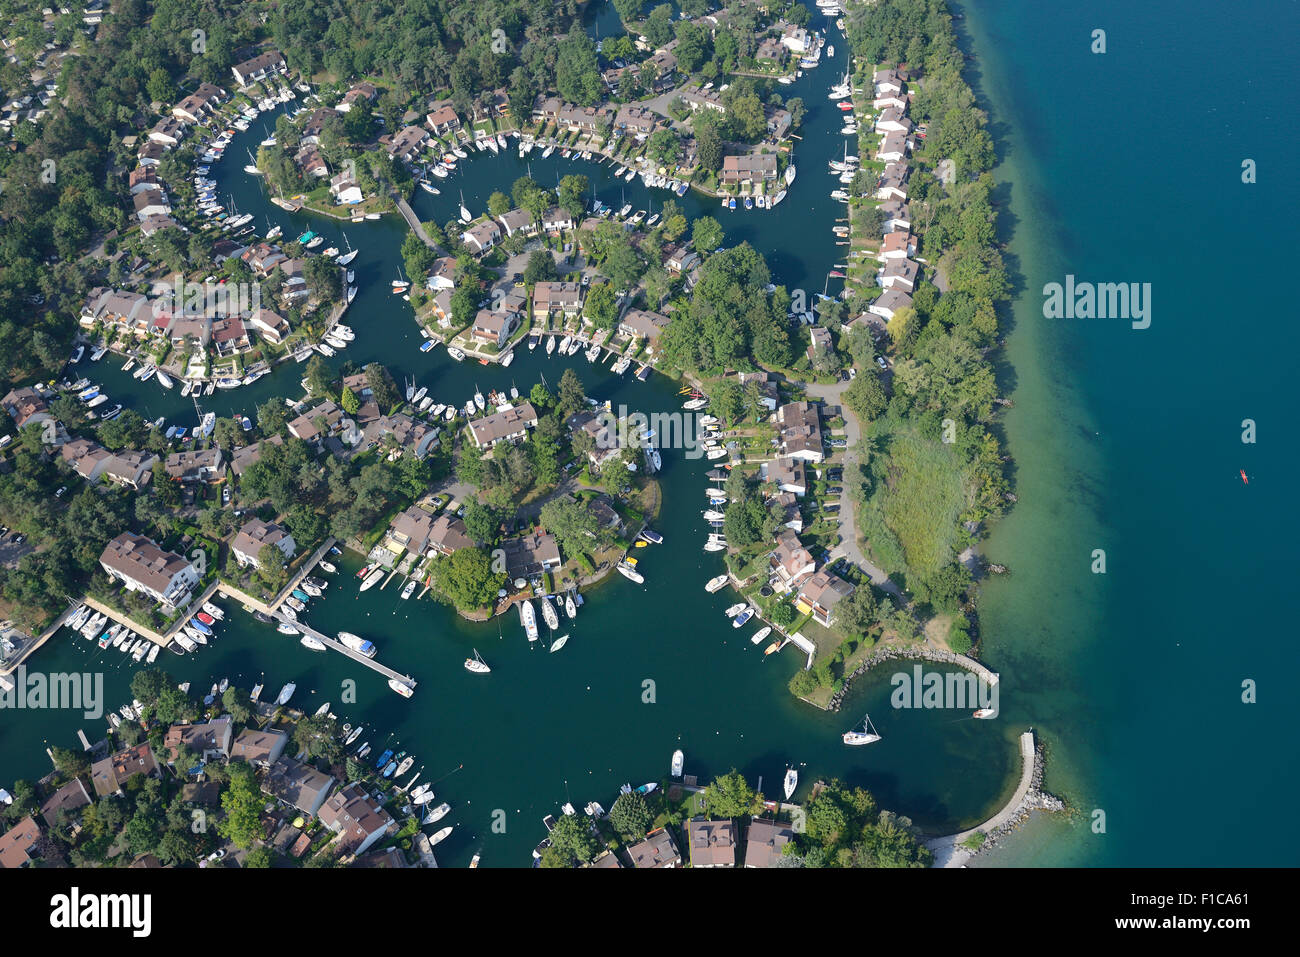 PORT RIPAILLE (aerial view). A marina on the southern shore of Lake Geneva, in the city of Thonon-les-Bains, France. - Stock Image